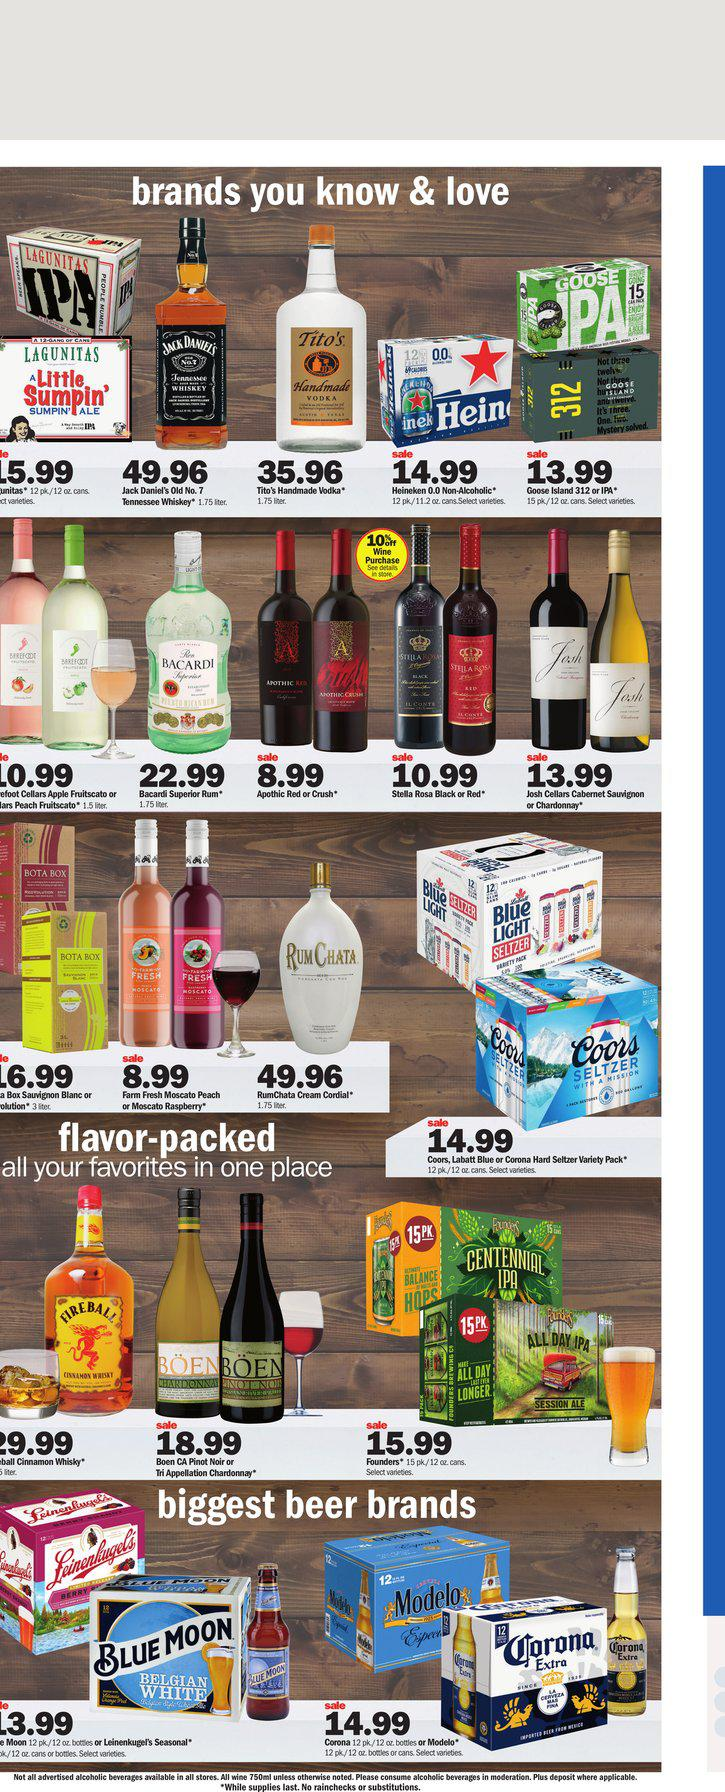 21.02.2021 Meijer ad 13. page